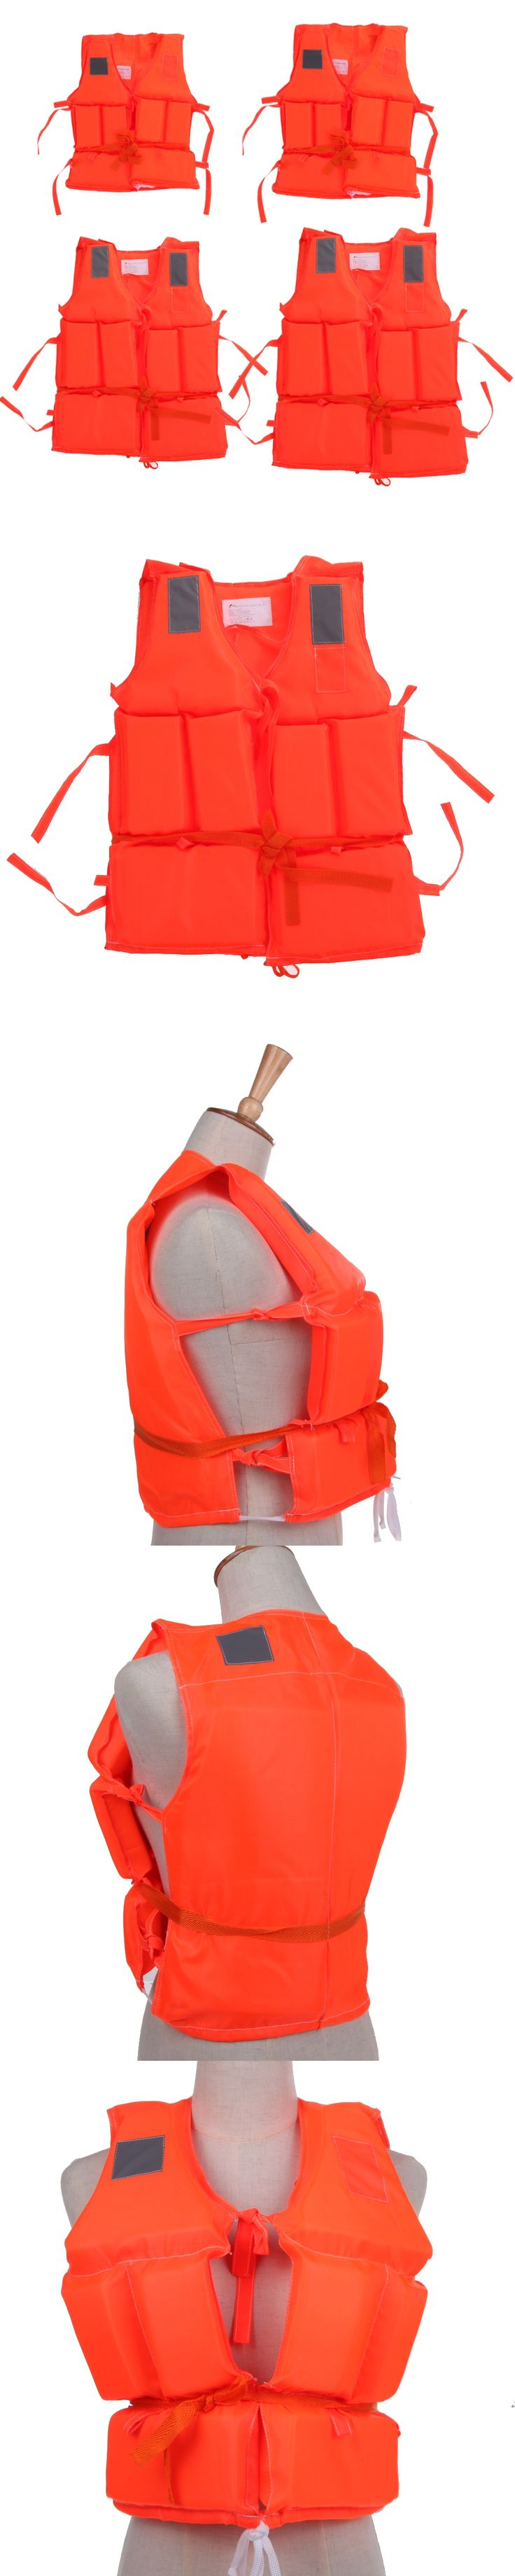 Kids To Adult Plus Size Red Life Vest With Survival Whistle Water Sports Foam Life Jacket For Drifting Boating Swim Ski Surfing